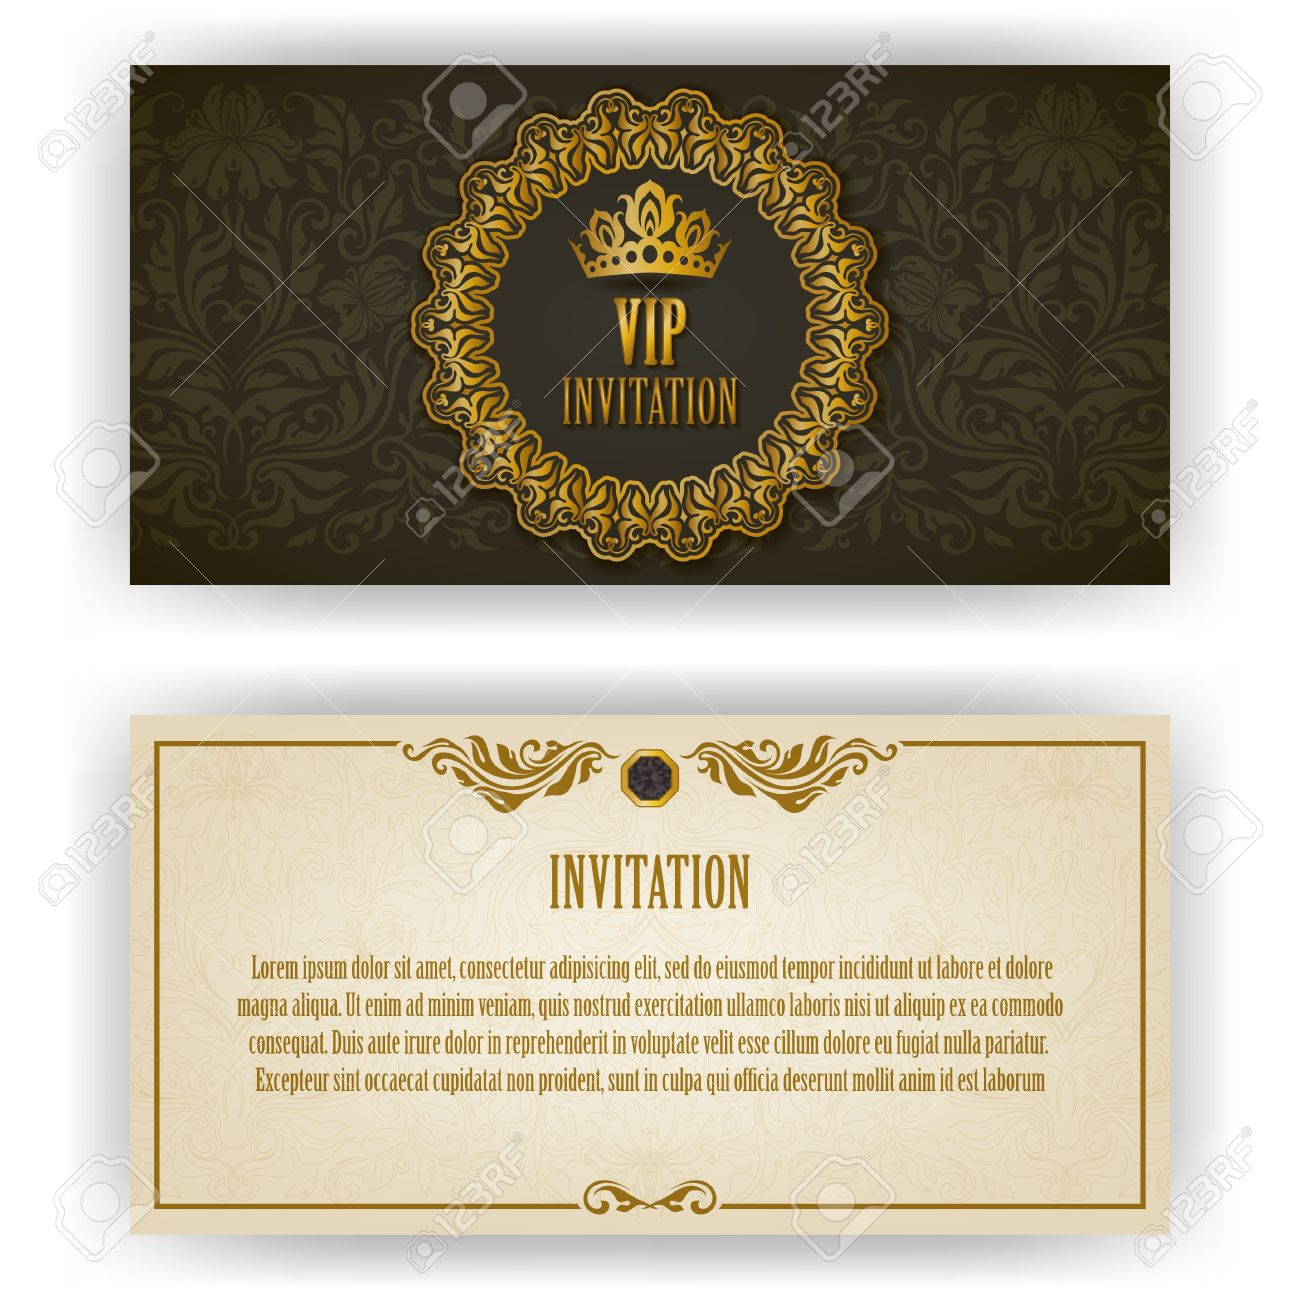 Elegant template for vip luxury invitation card with lace elegant template for vip luxury invitation card with lace ornament and place for text floral stopboris Image collections